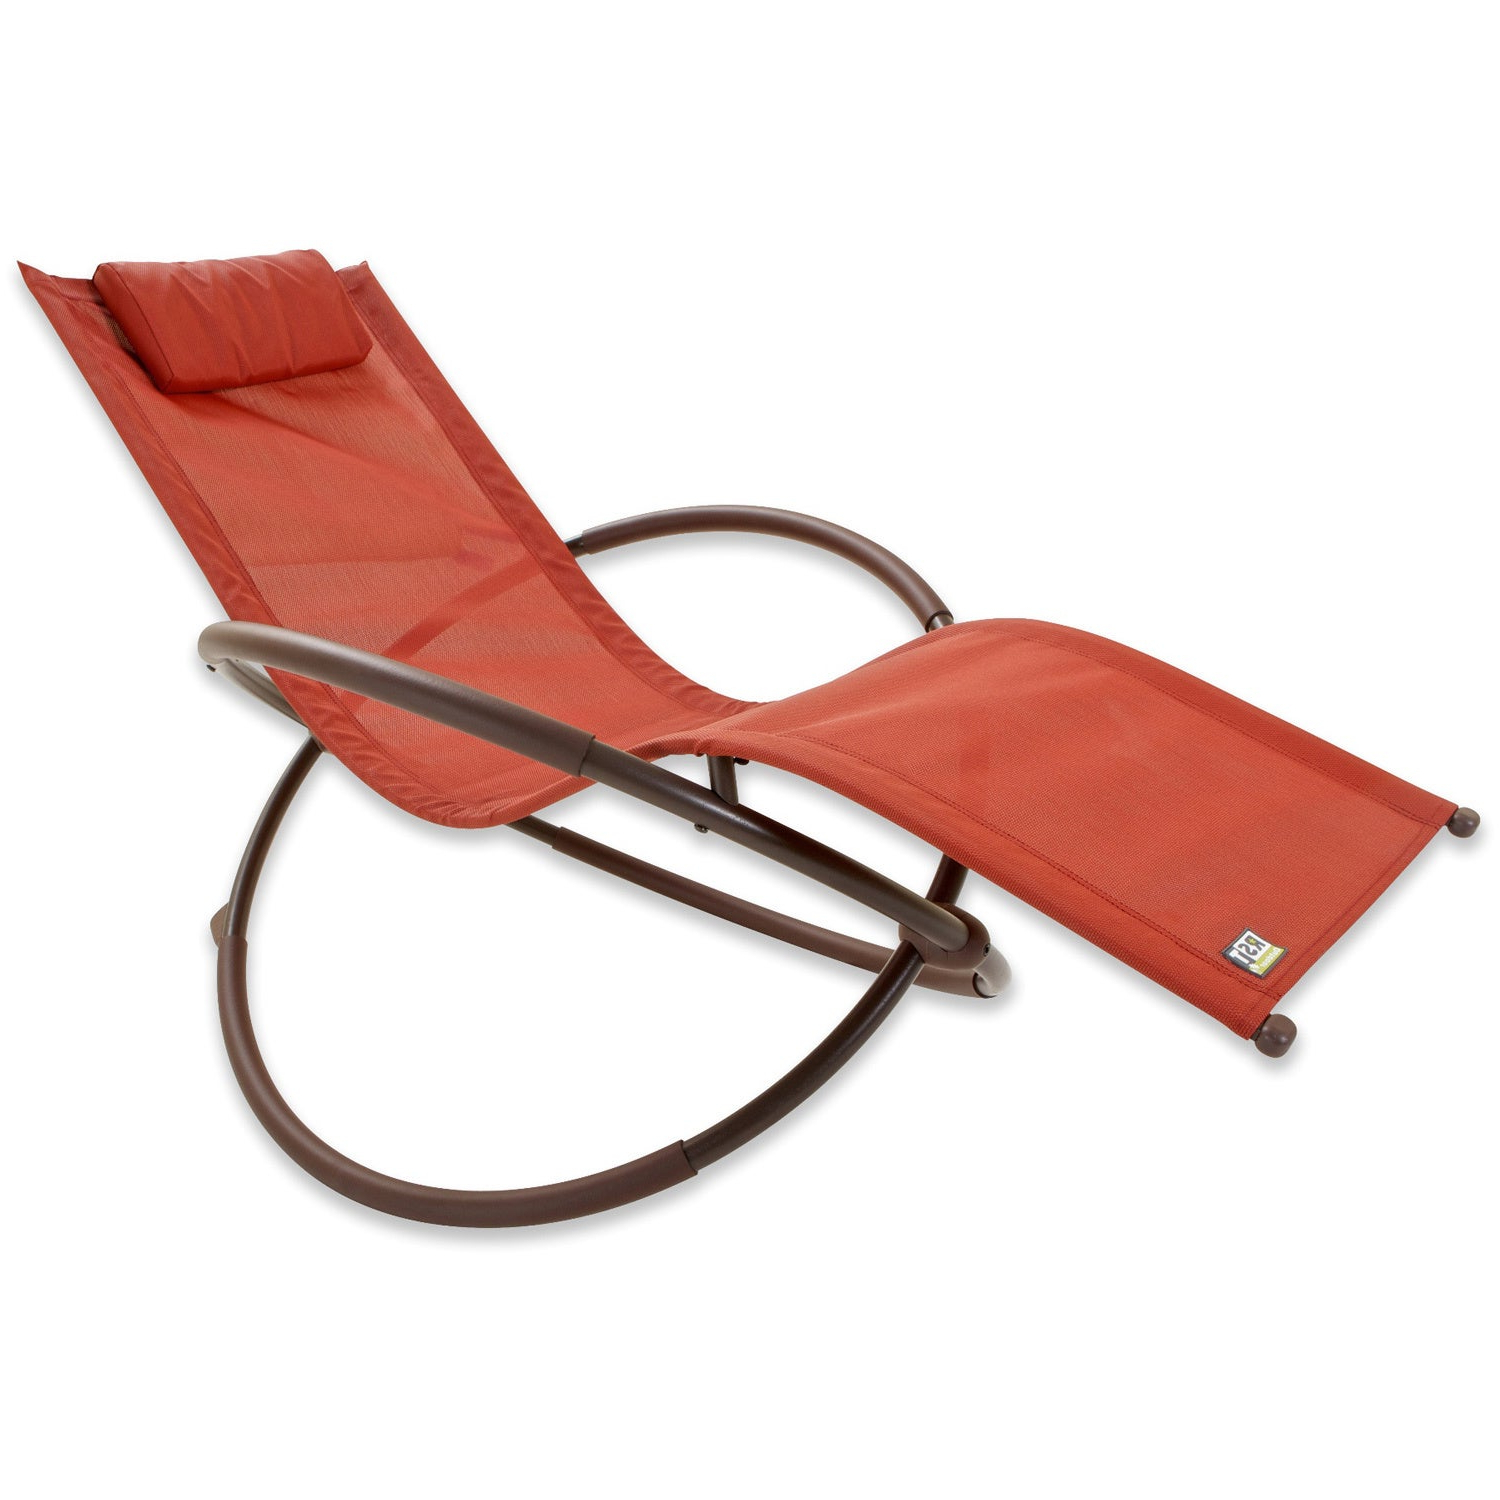 Orbital Patio Lounger Rocking Chairs With Latest Rst Brands Orbital Zero Gravity Patio Lounger Rocking Chair (Gallery 2 of 25)